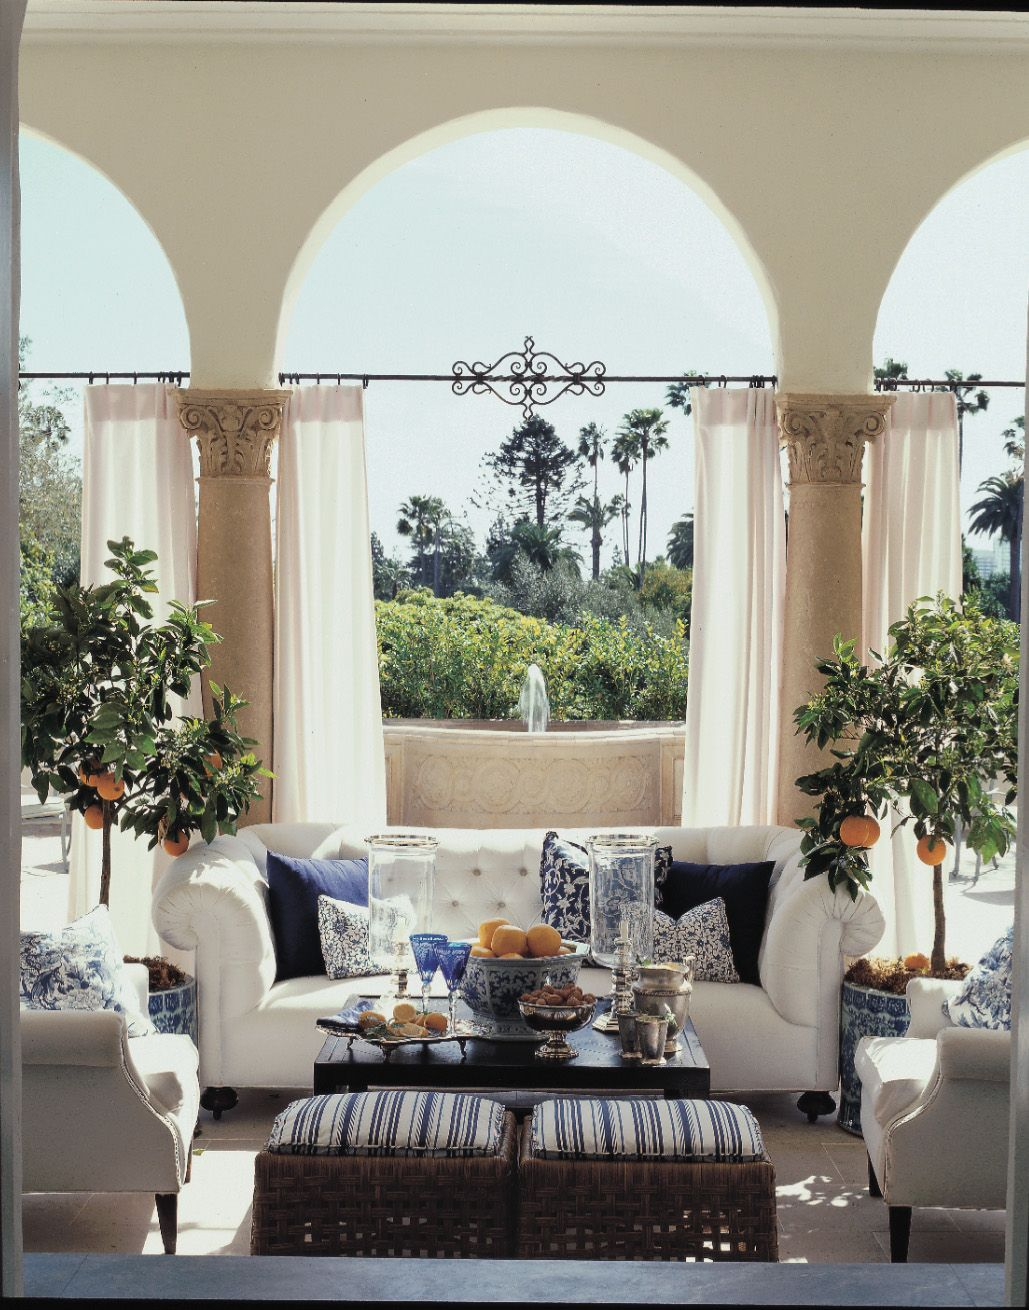 Chic Patio Design Ideas   Patio Decorating Tips From Designer Mary McDonald